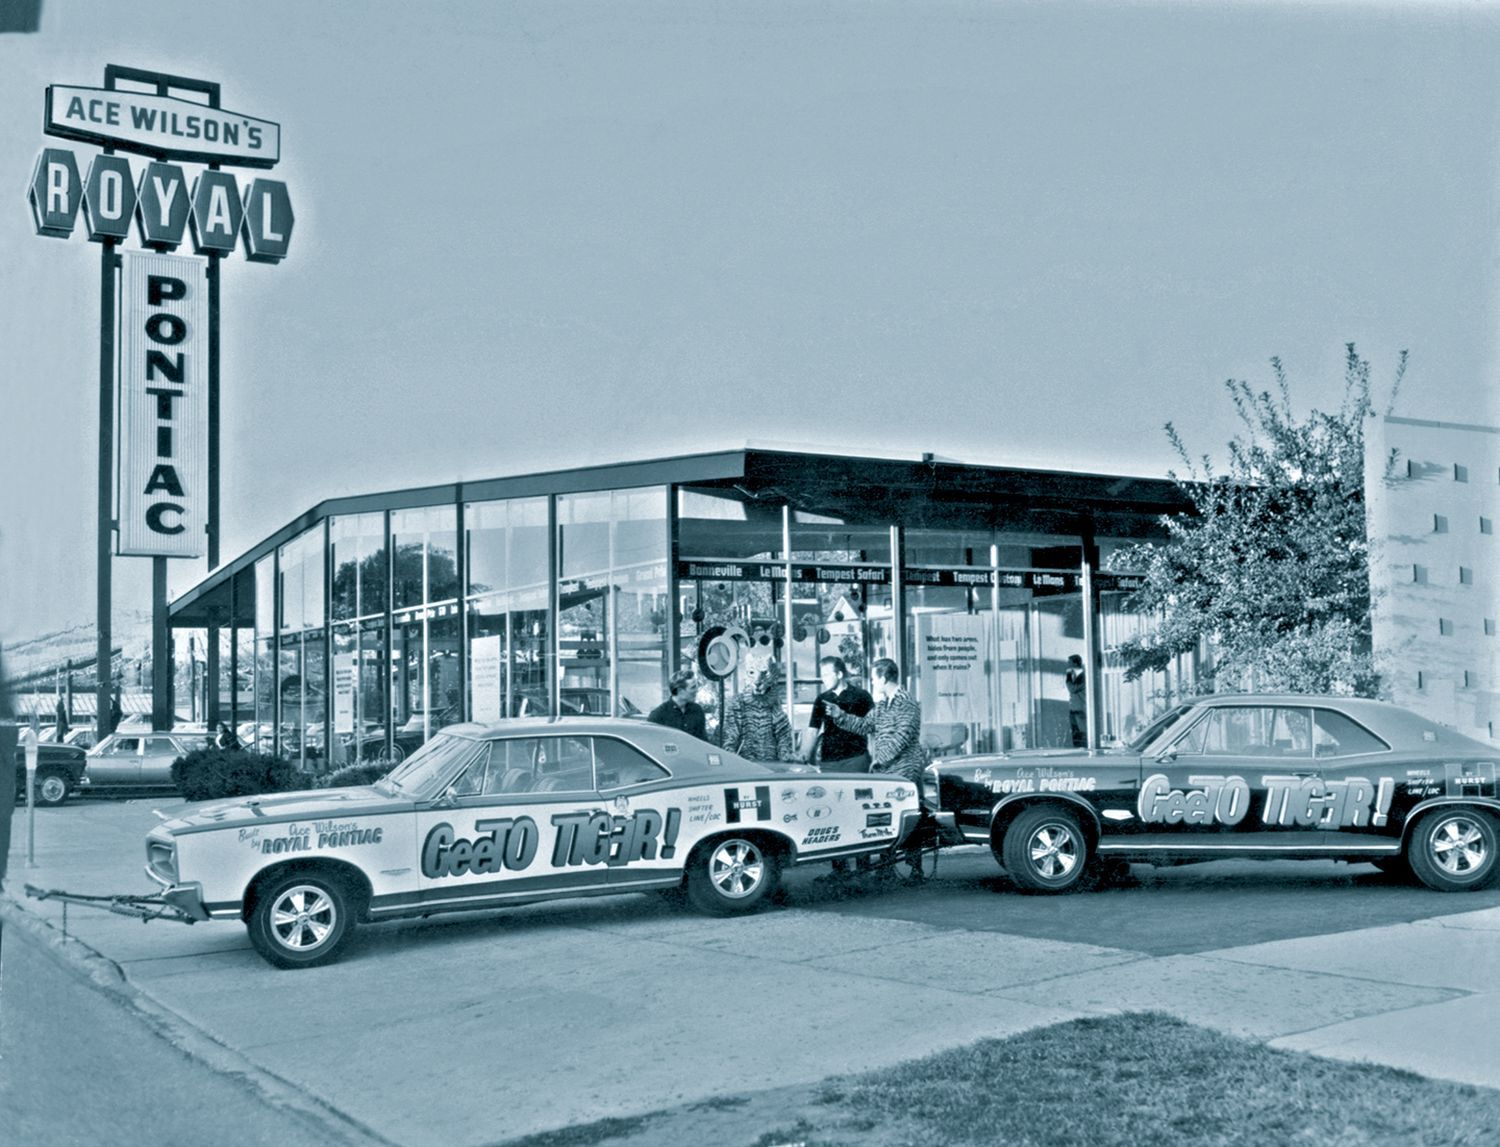 1966 Ace Wilson's Royal Pontiac Dealership, Royal Oak, Michigan ...